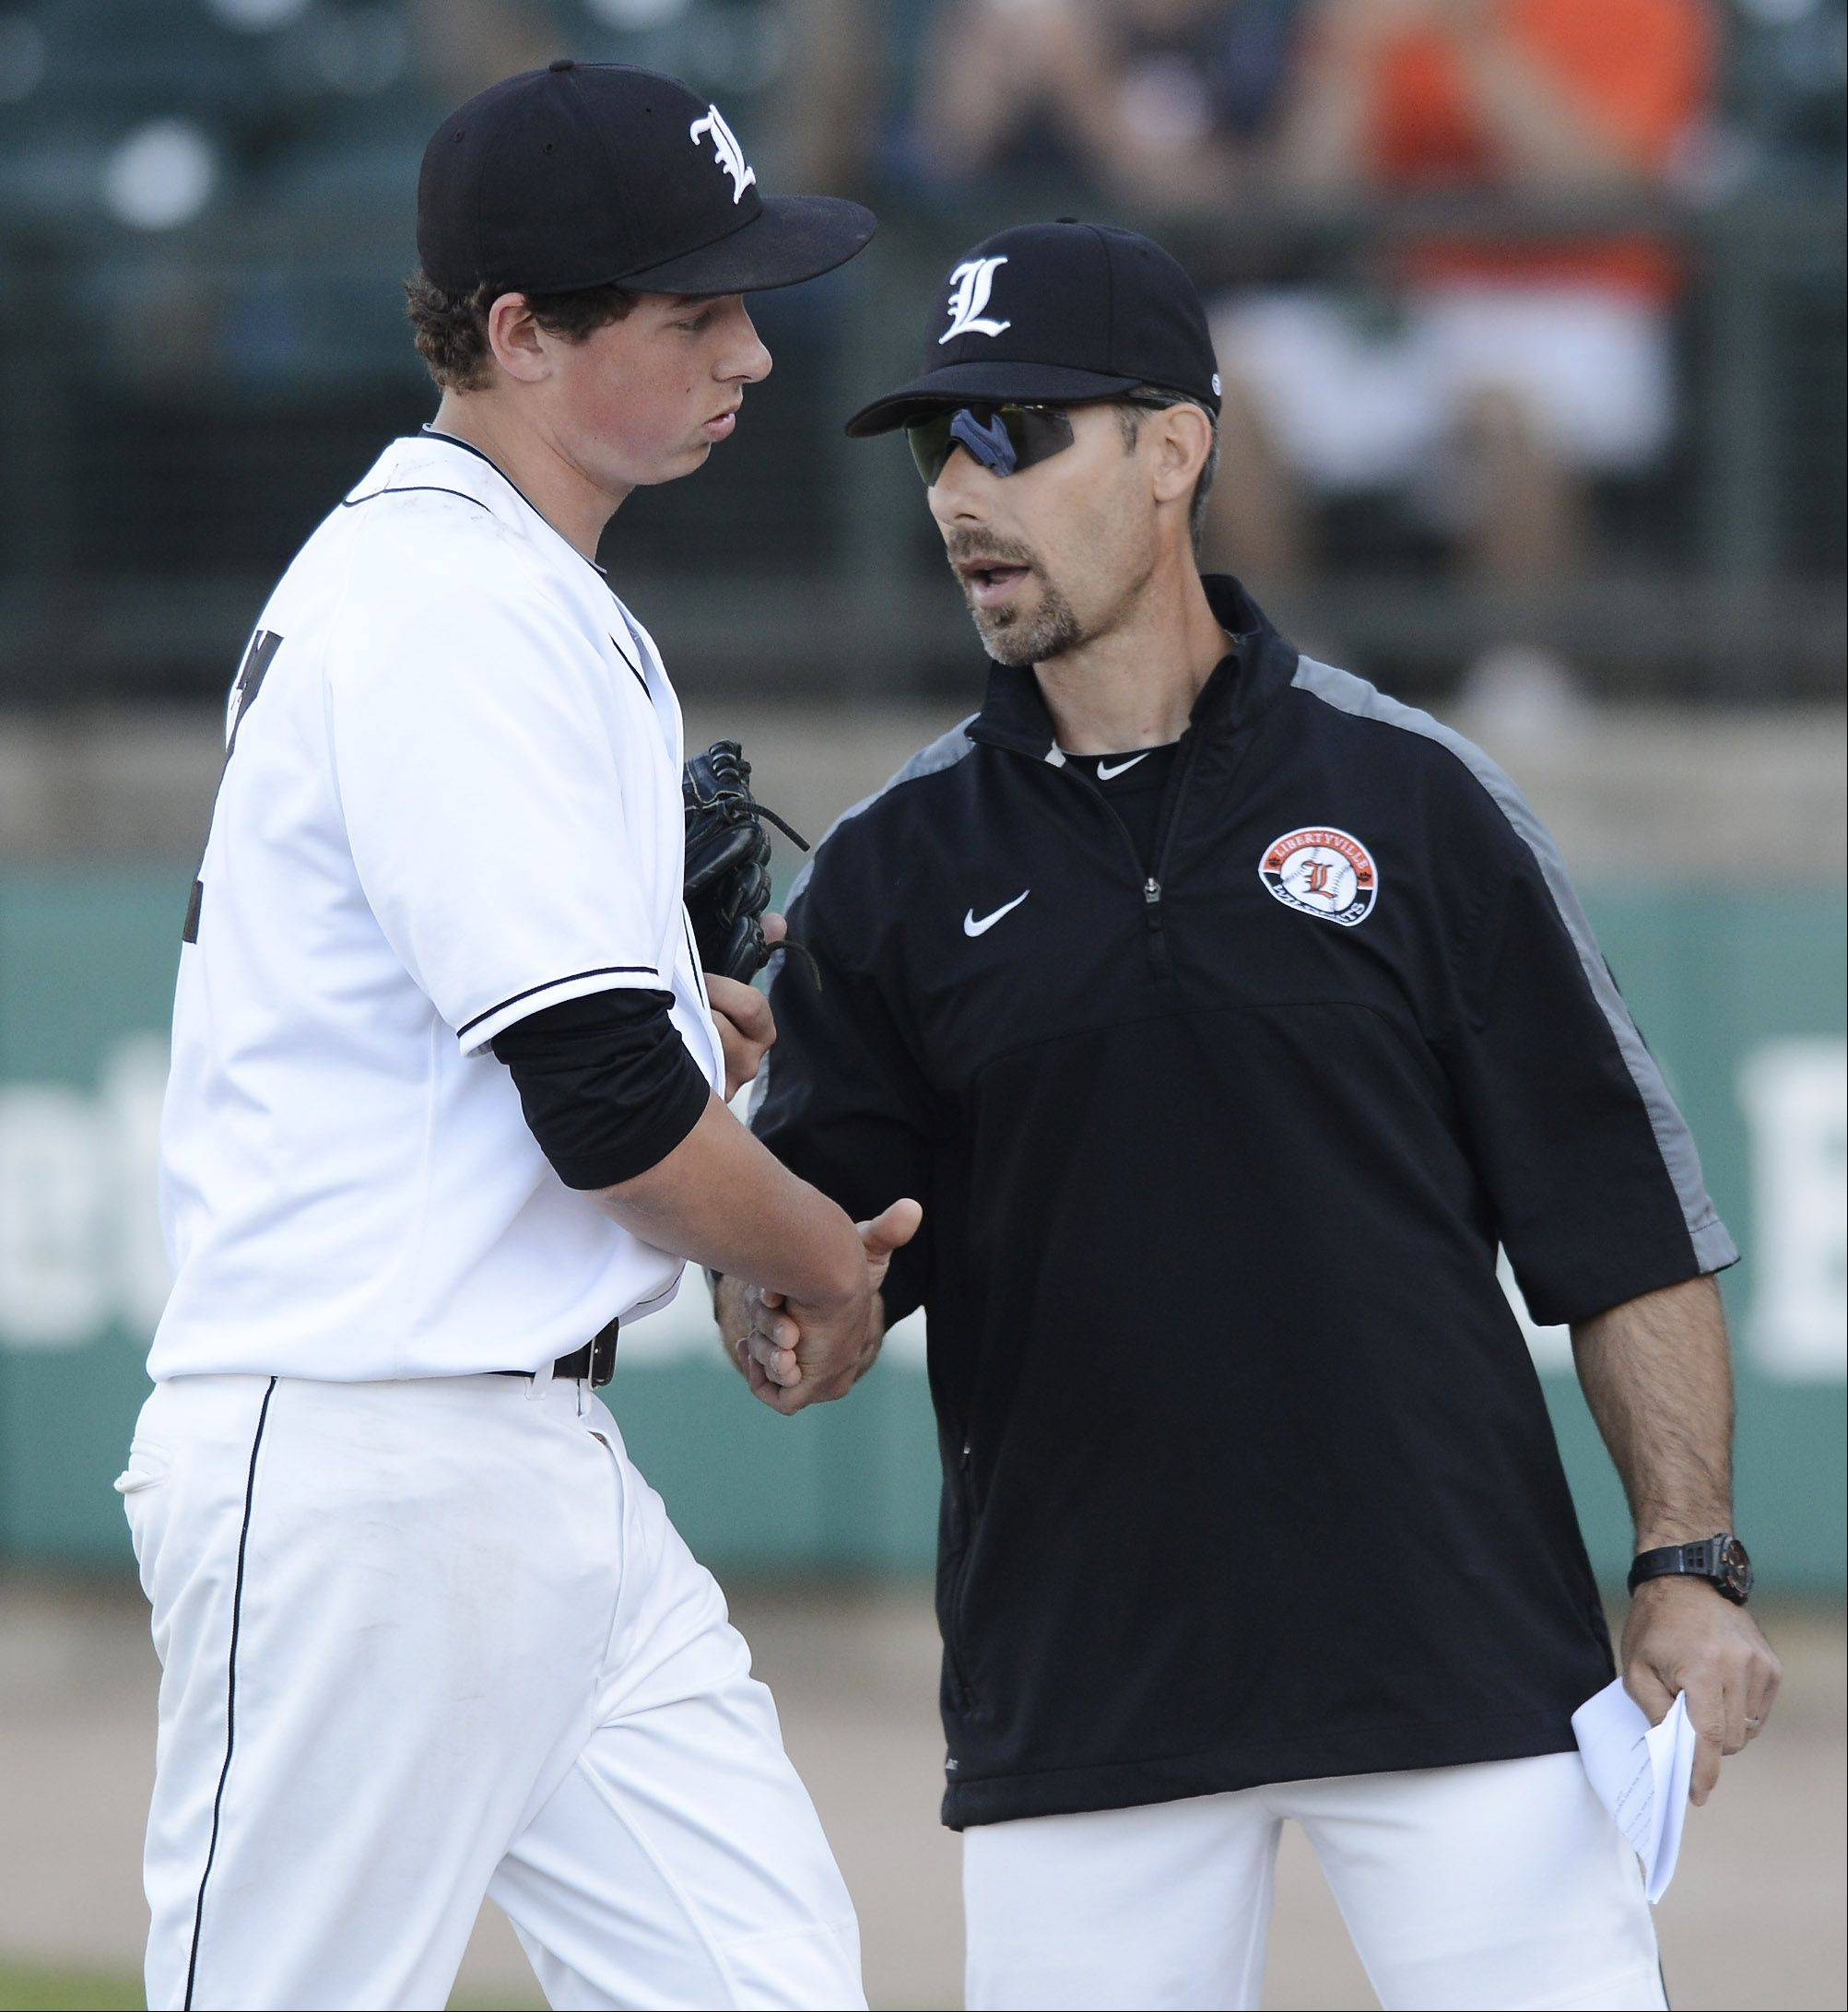 Libertyville starting pitcher Jeff Burton gets a handshake from coach Jim Schurr as he comes out of the game during the Class 4A state baseball semifinal against St. Charles East at Silver Cross Field in Joliet Friday.